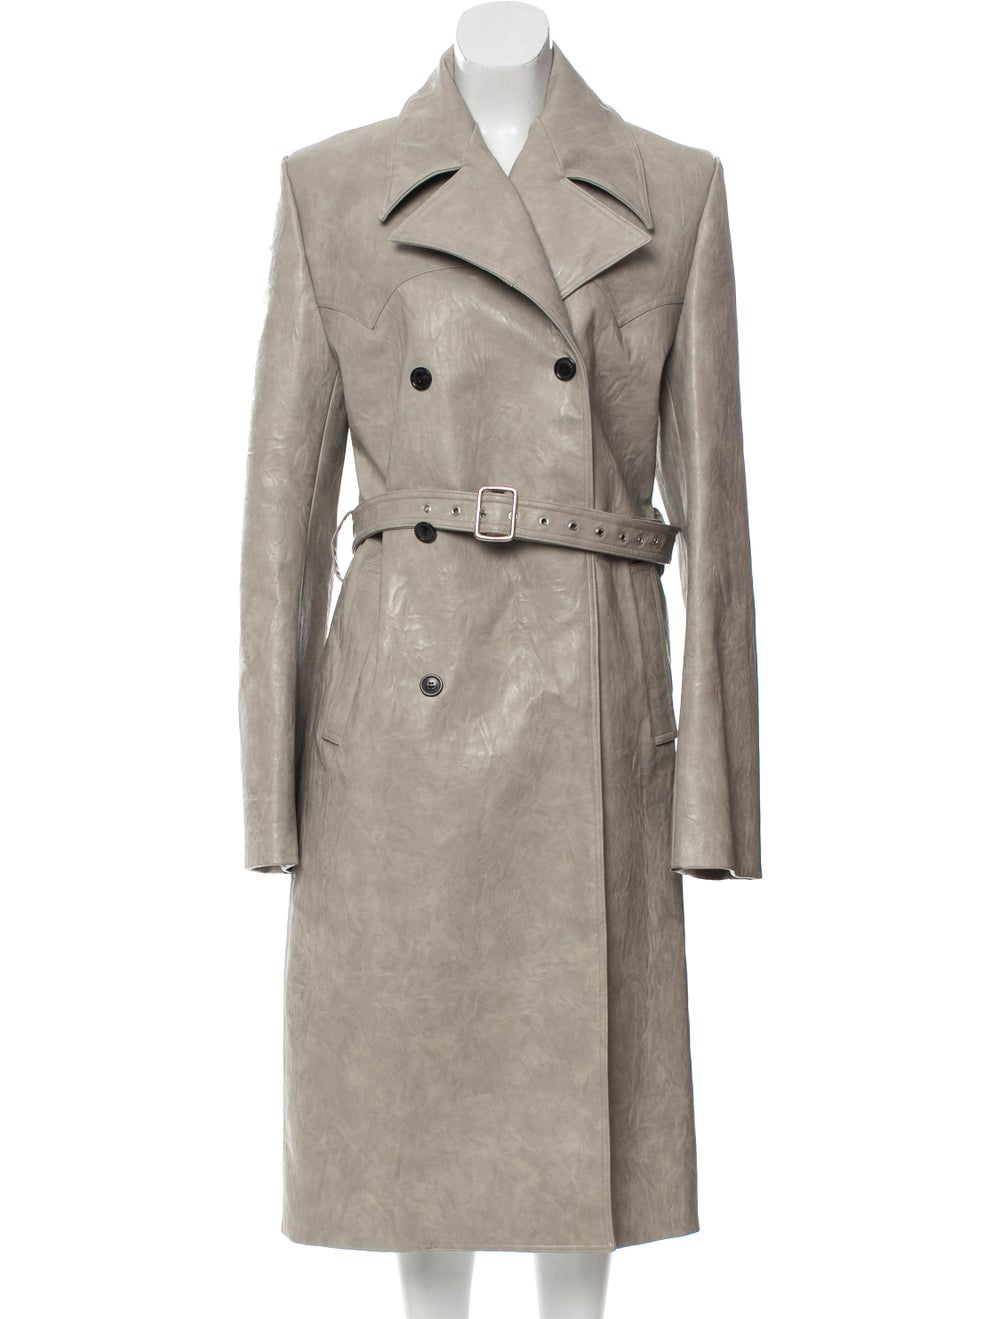 Y/Project Trench Coat w/ Tags Brown - image 1